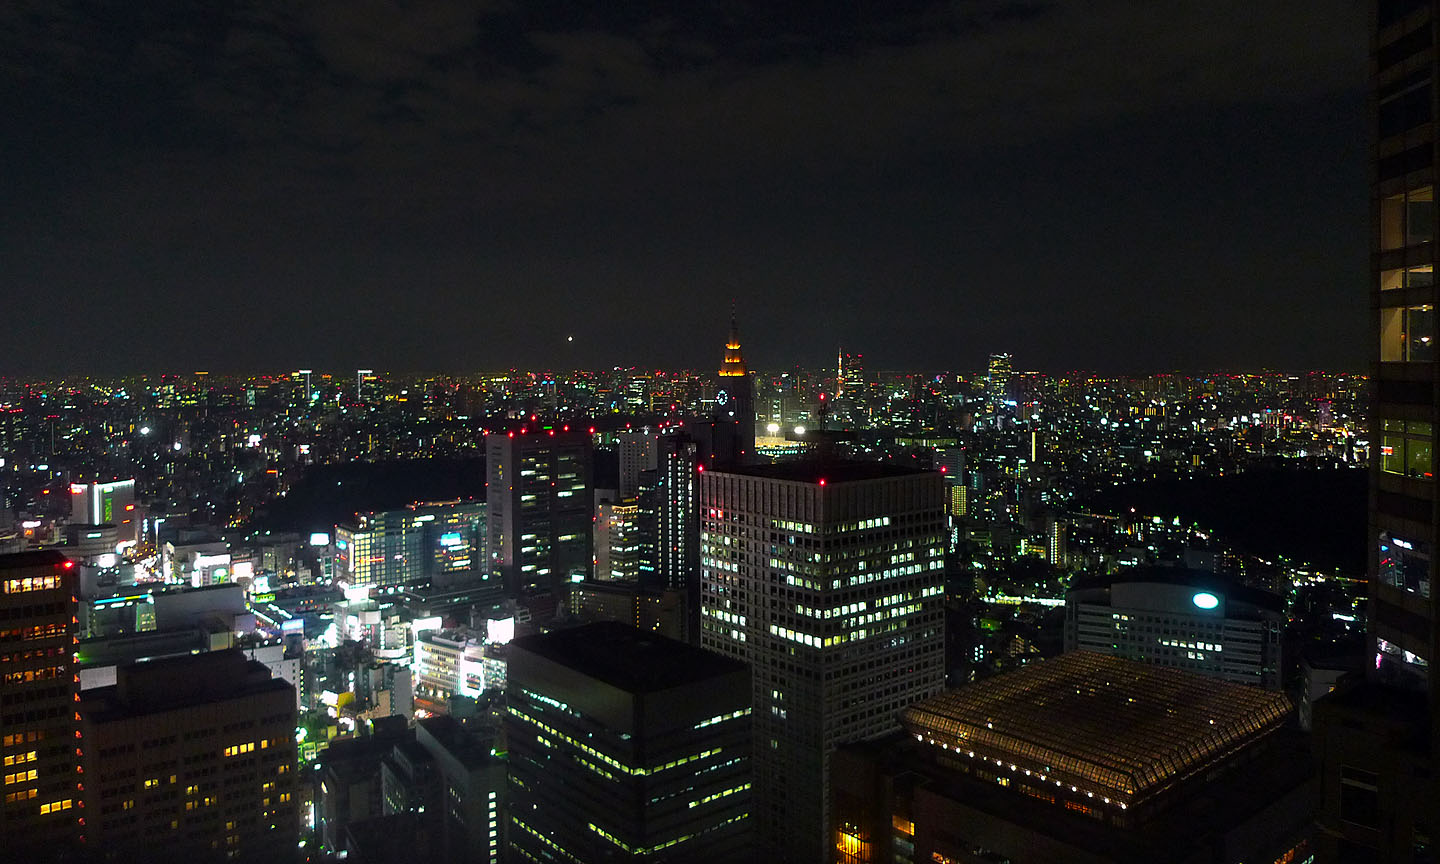 tokyo night view from skyscraper night photography